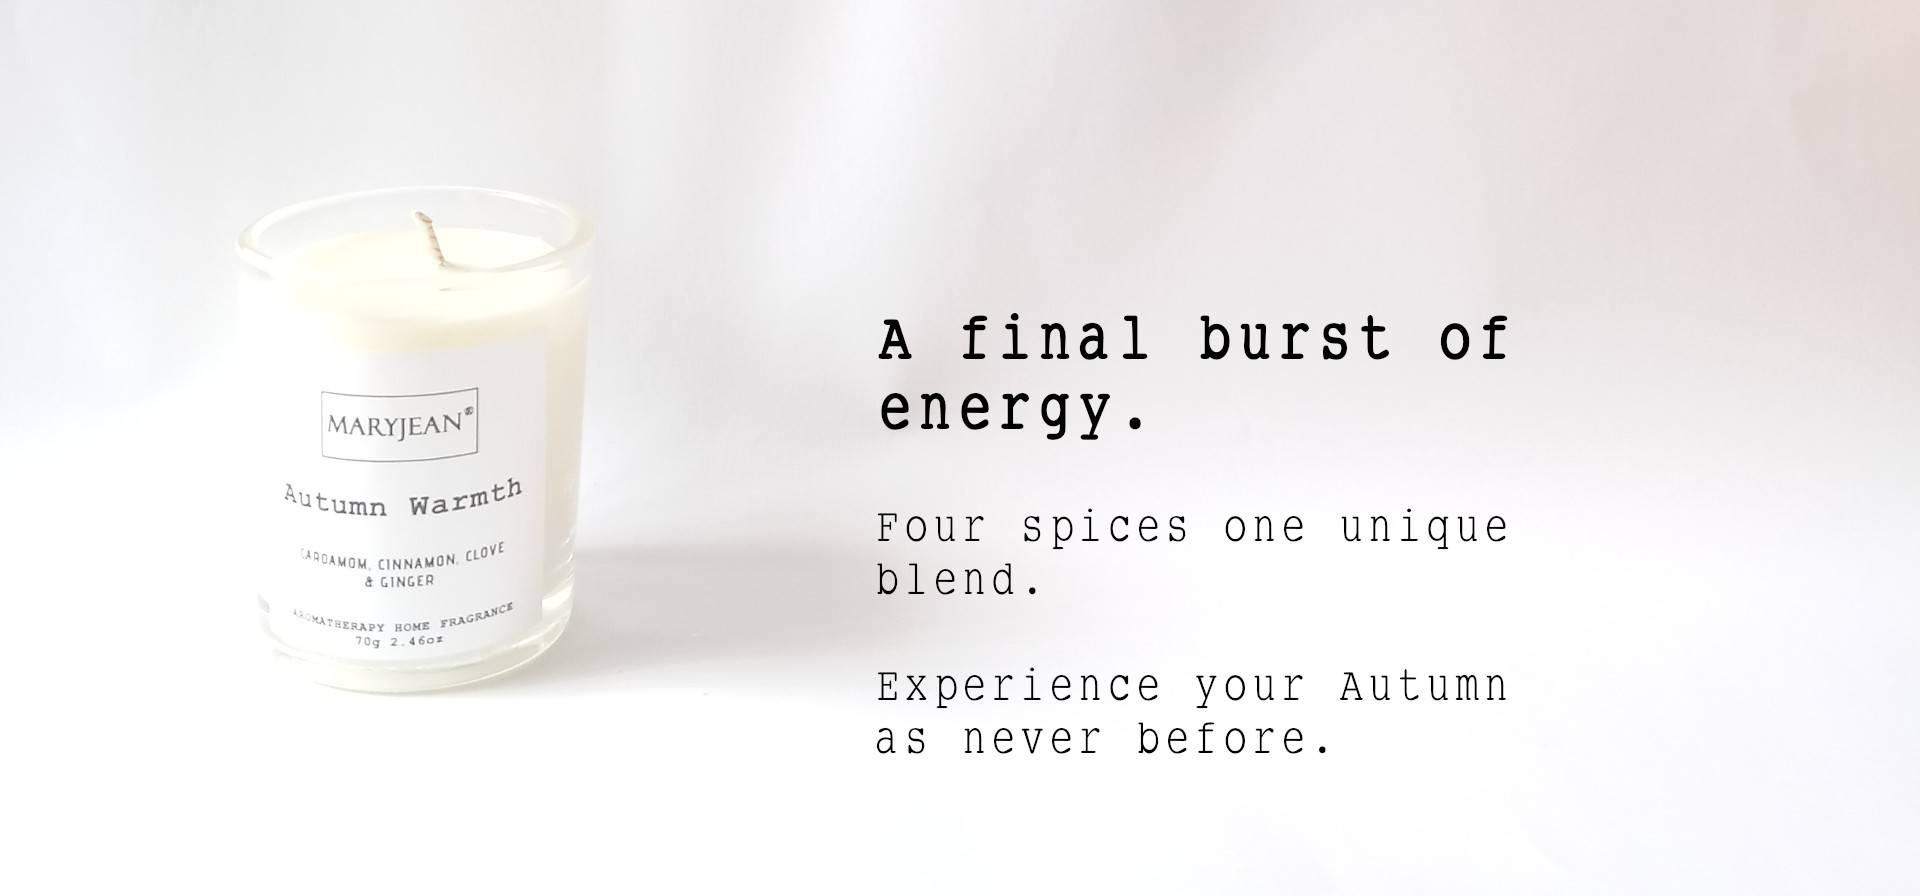 Natural Home Season's Autumn Fragrance Hand Poured Small Luxury Soy Candle en_GB